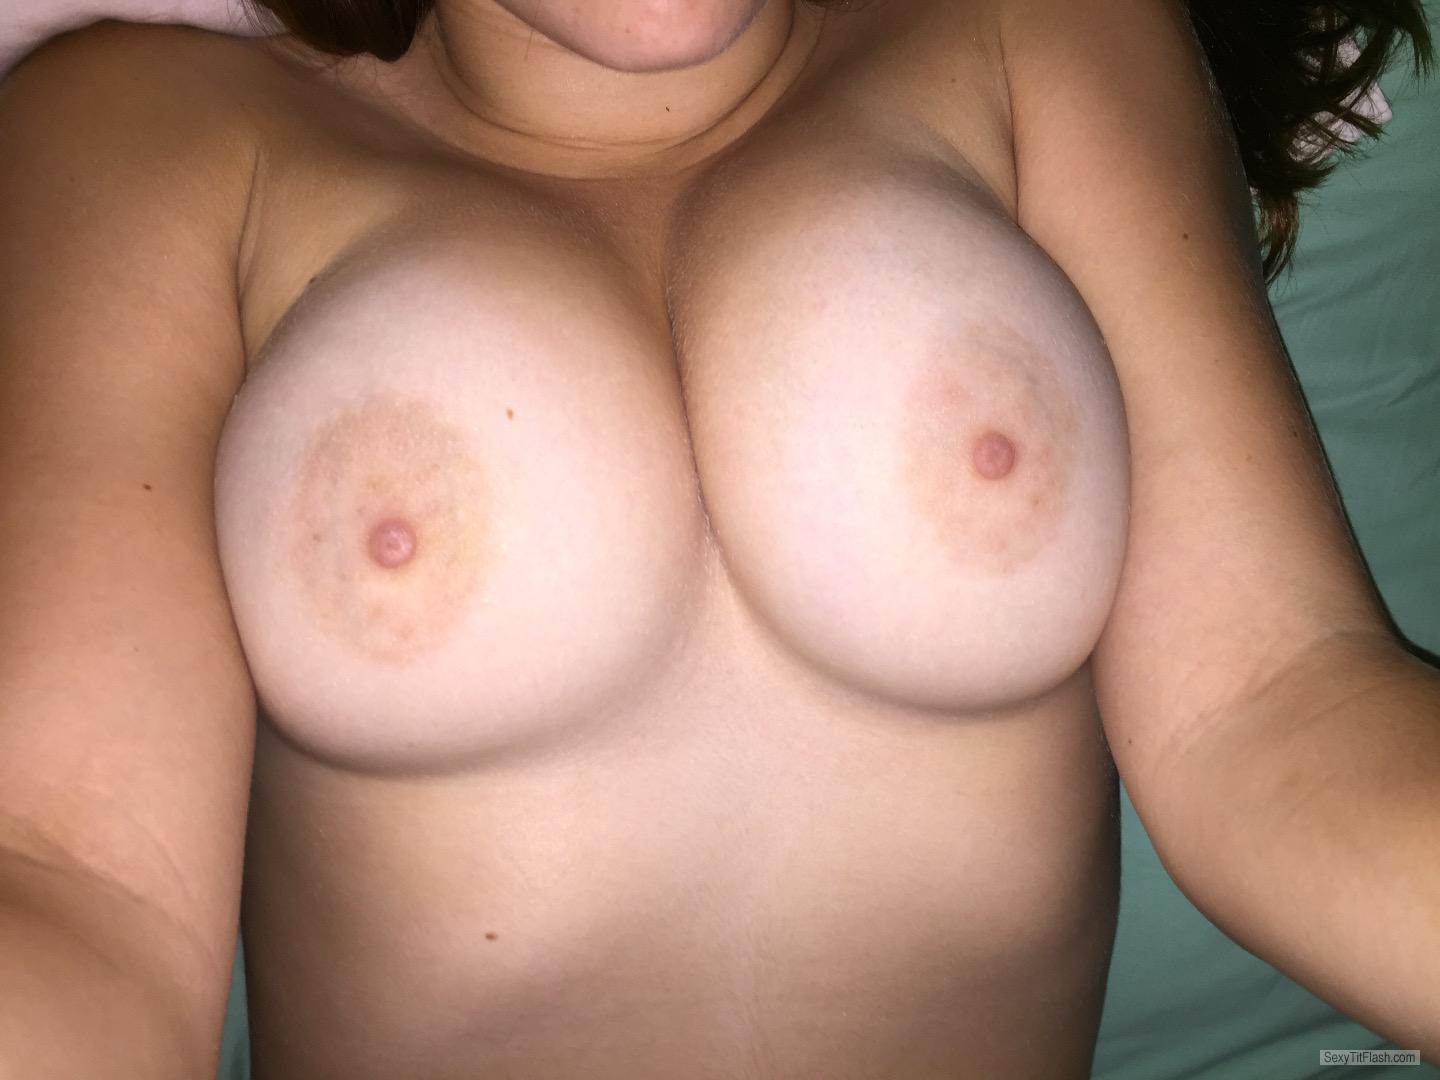 Tit Flash: My Medium Tits (Selfie) - Hotgirl from United States